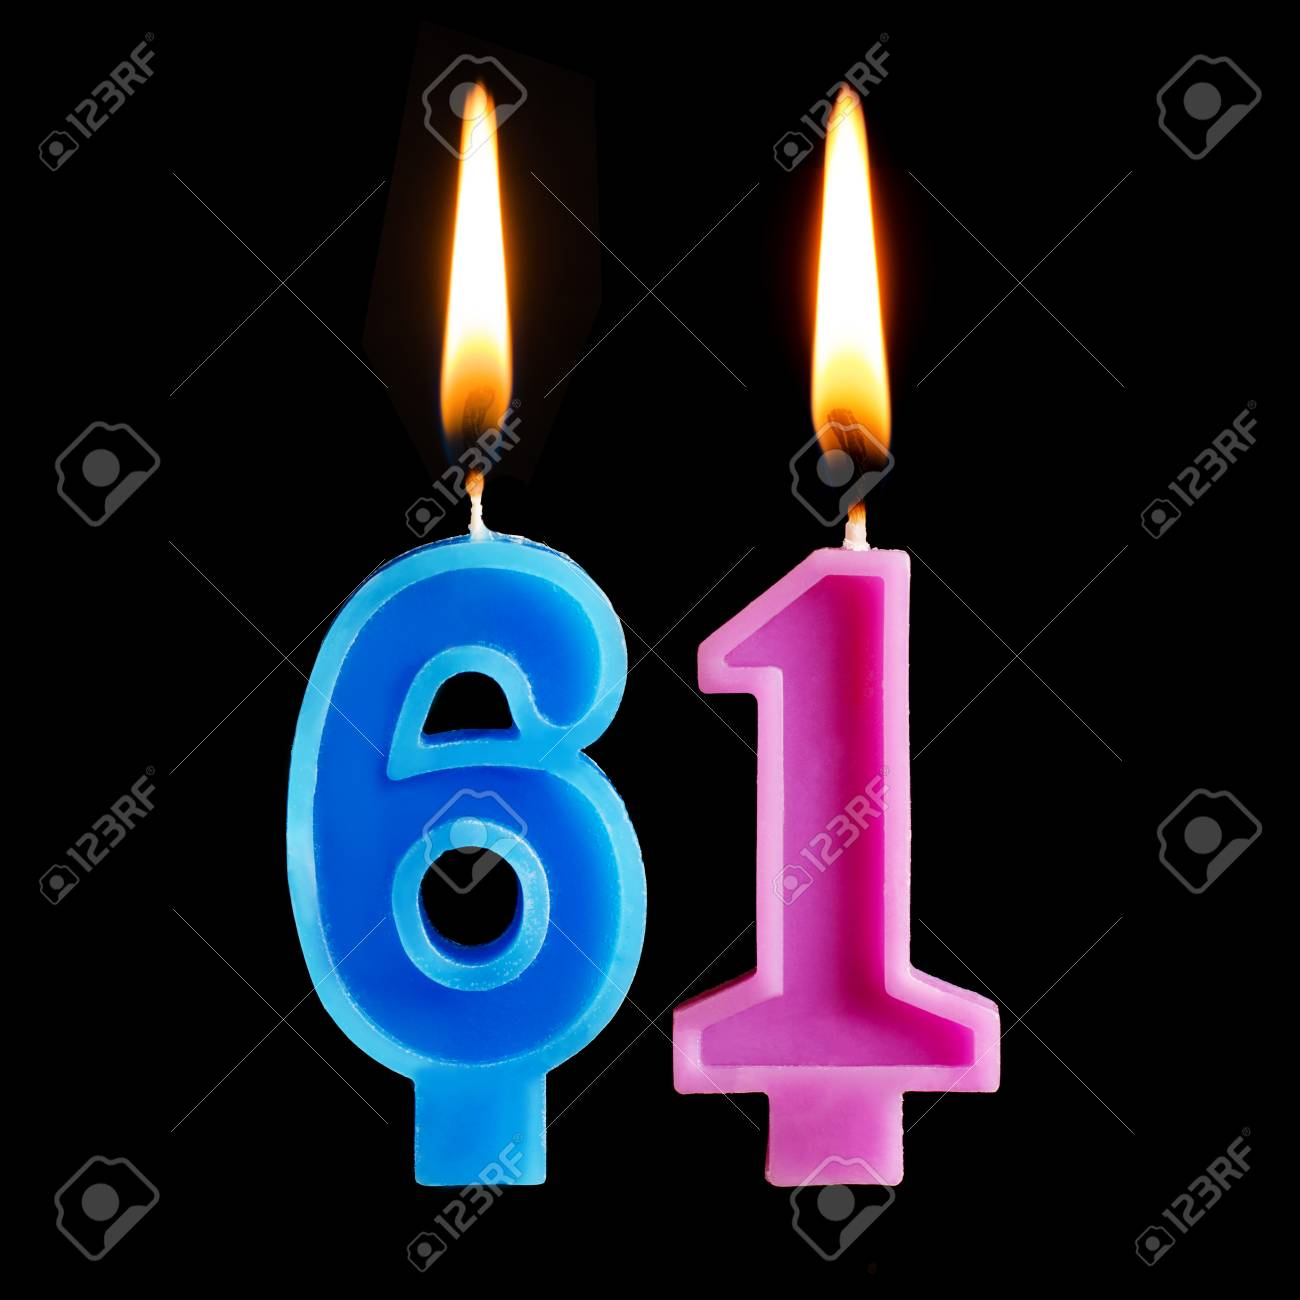 Burning Birthday Candles In The Form Of 61 Sixty One For Cake Isolated On Black Background